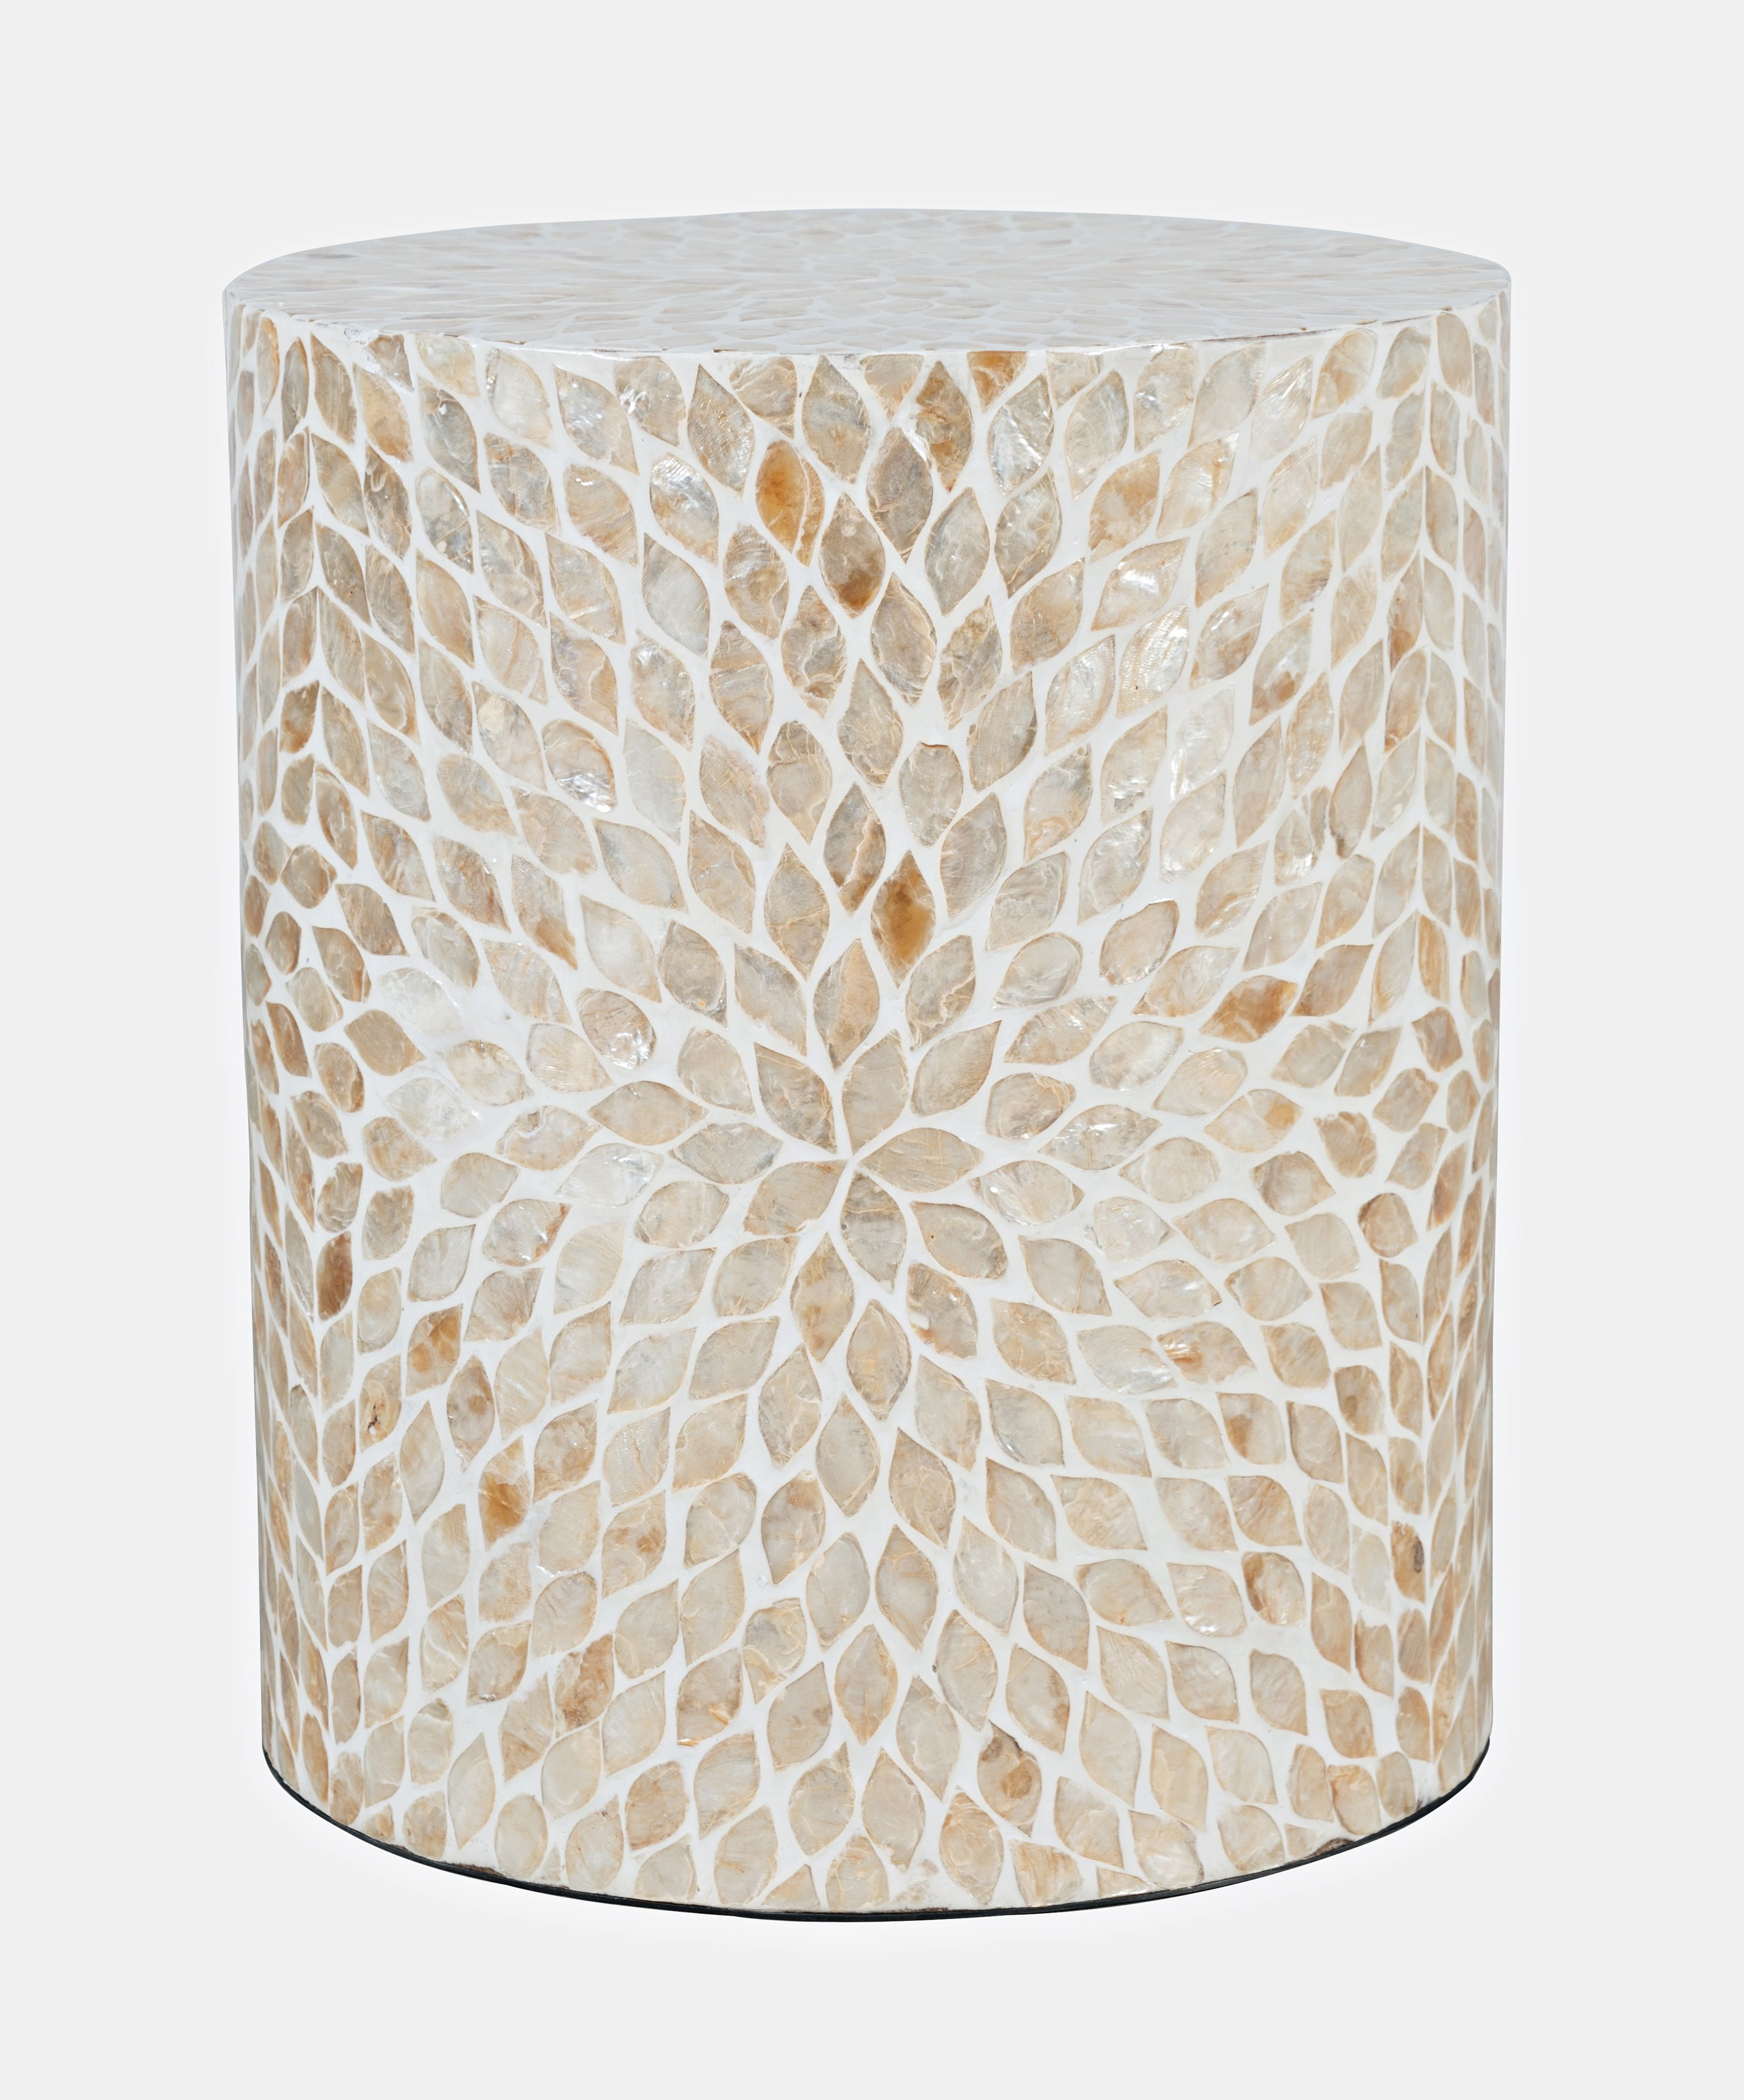 Global Archive Capri Small Round Table by Jofran at Godby Home Furnishings